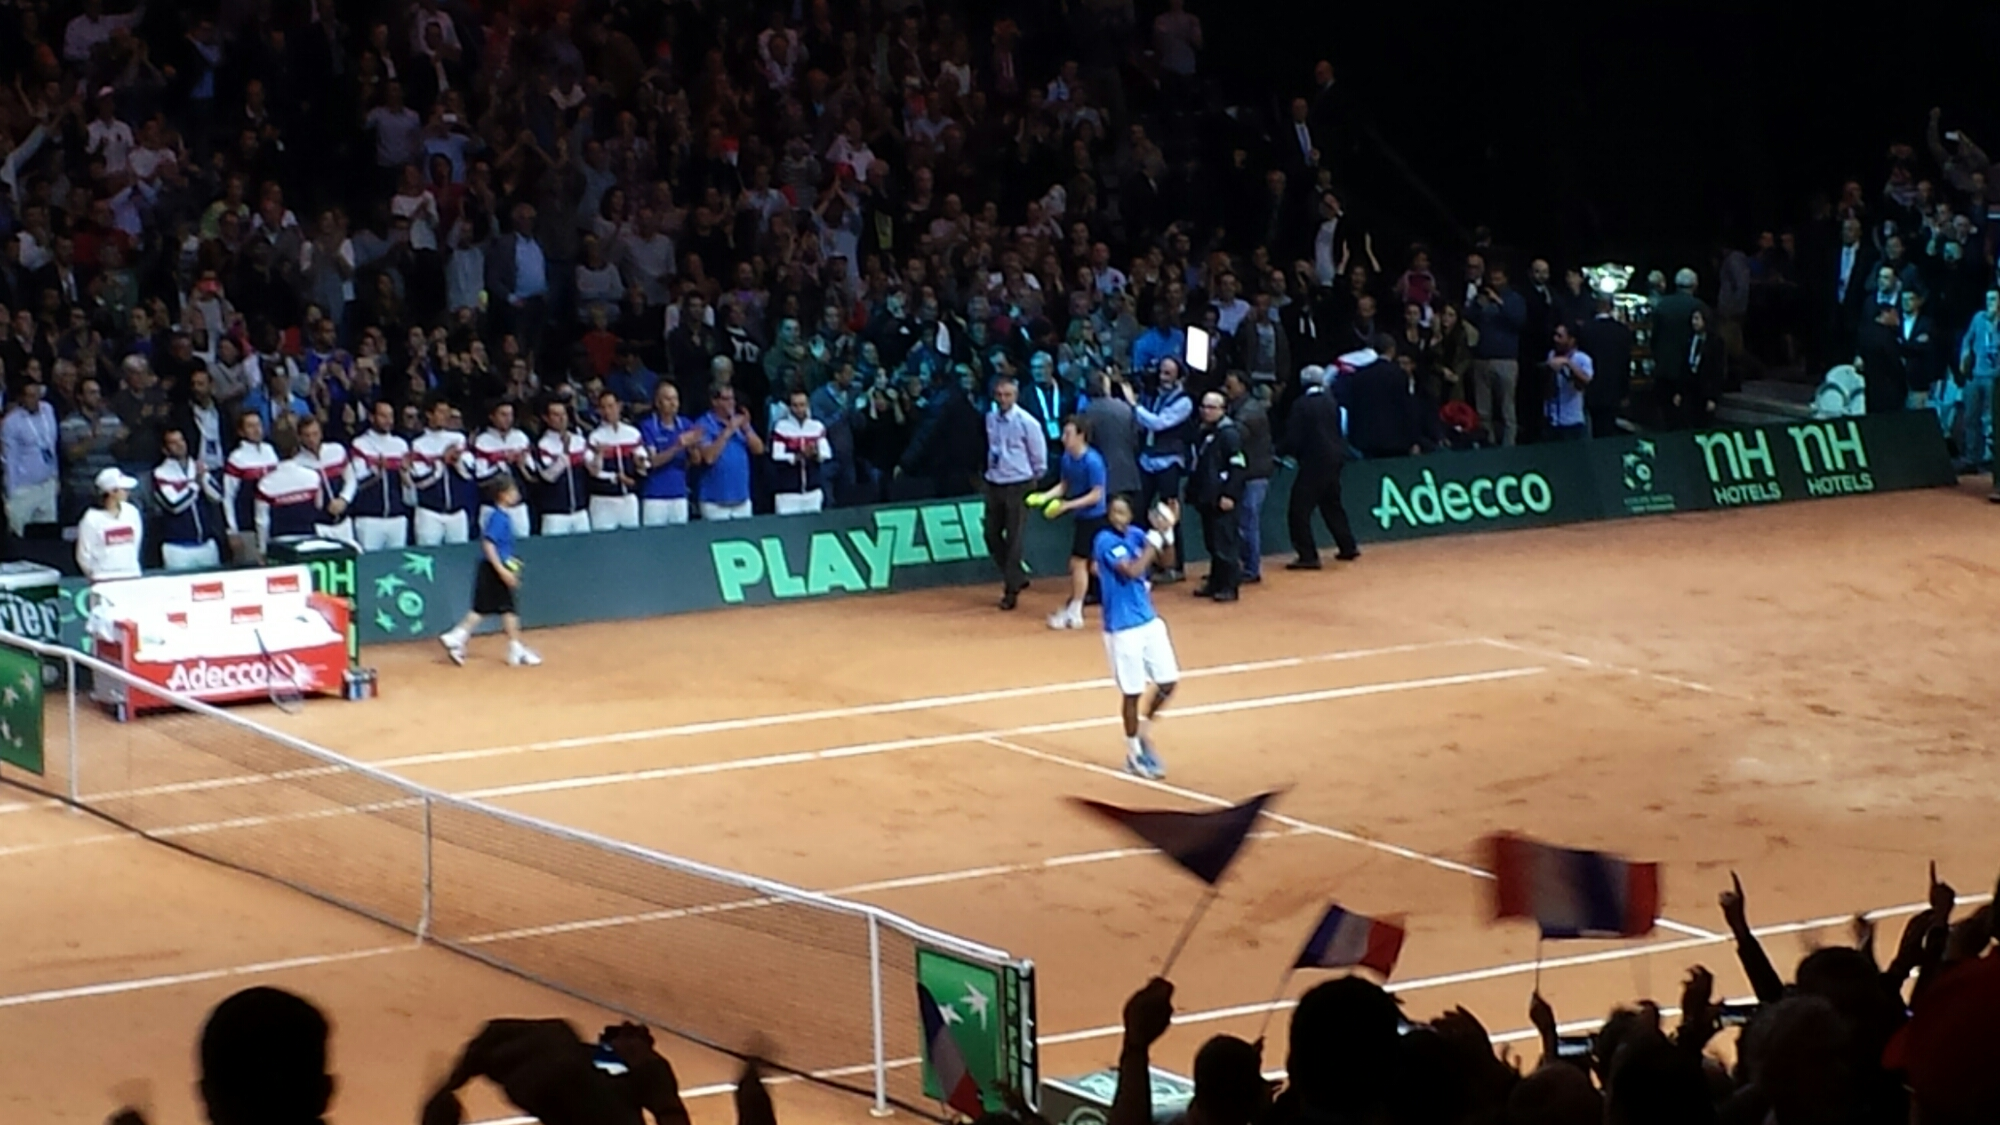 Monfils Getting Cheers